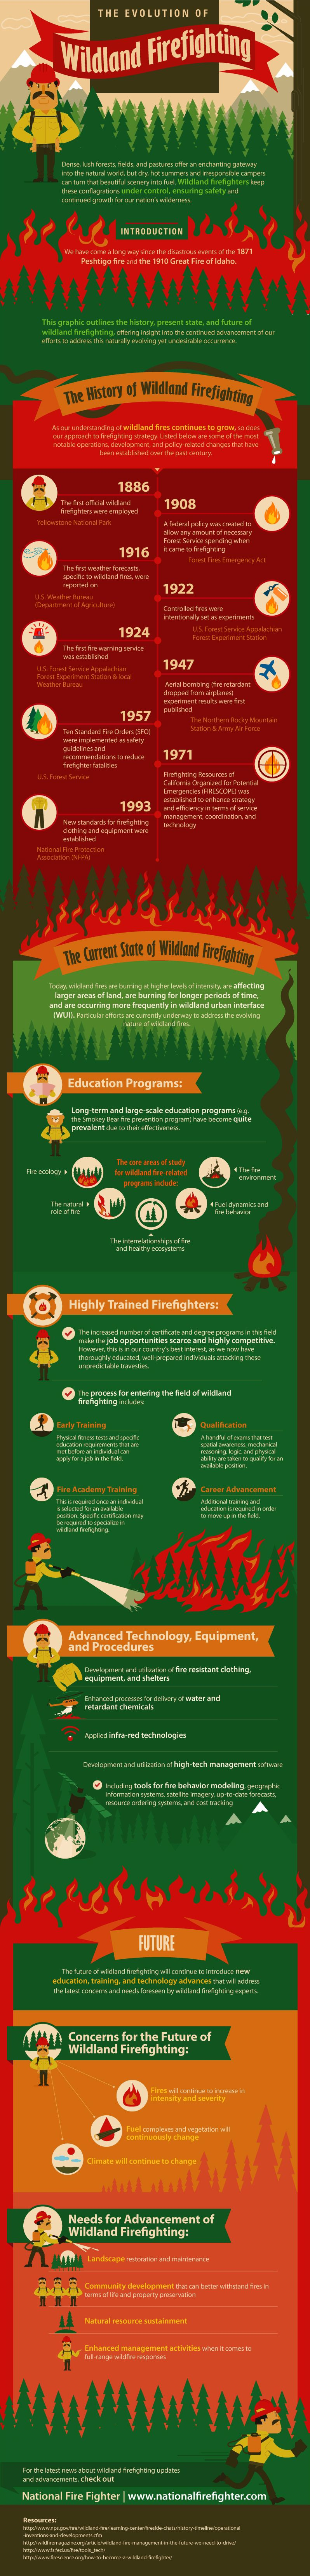 The Evolution of Wildland Firefighting